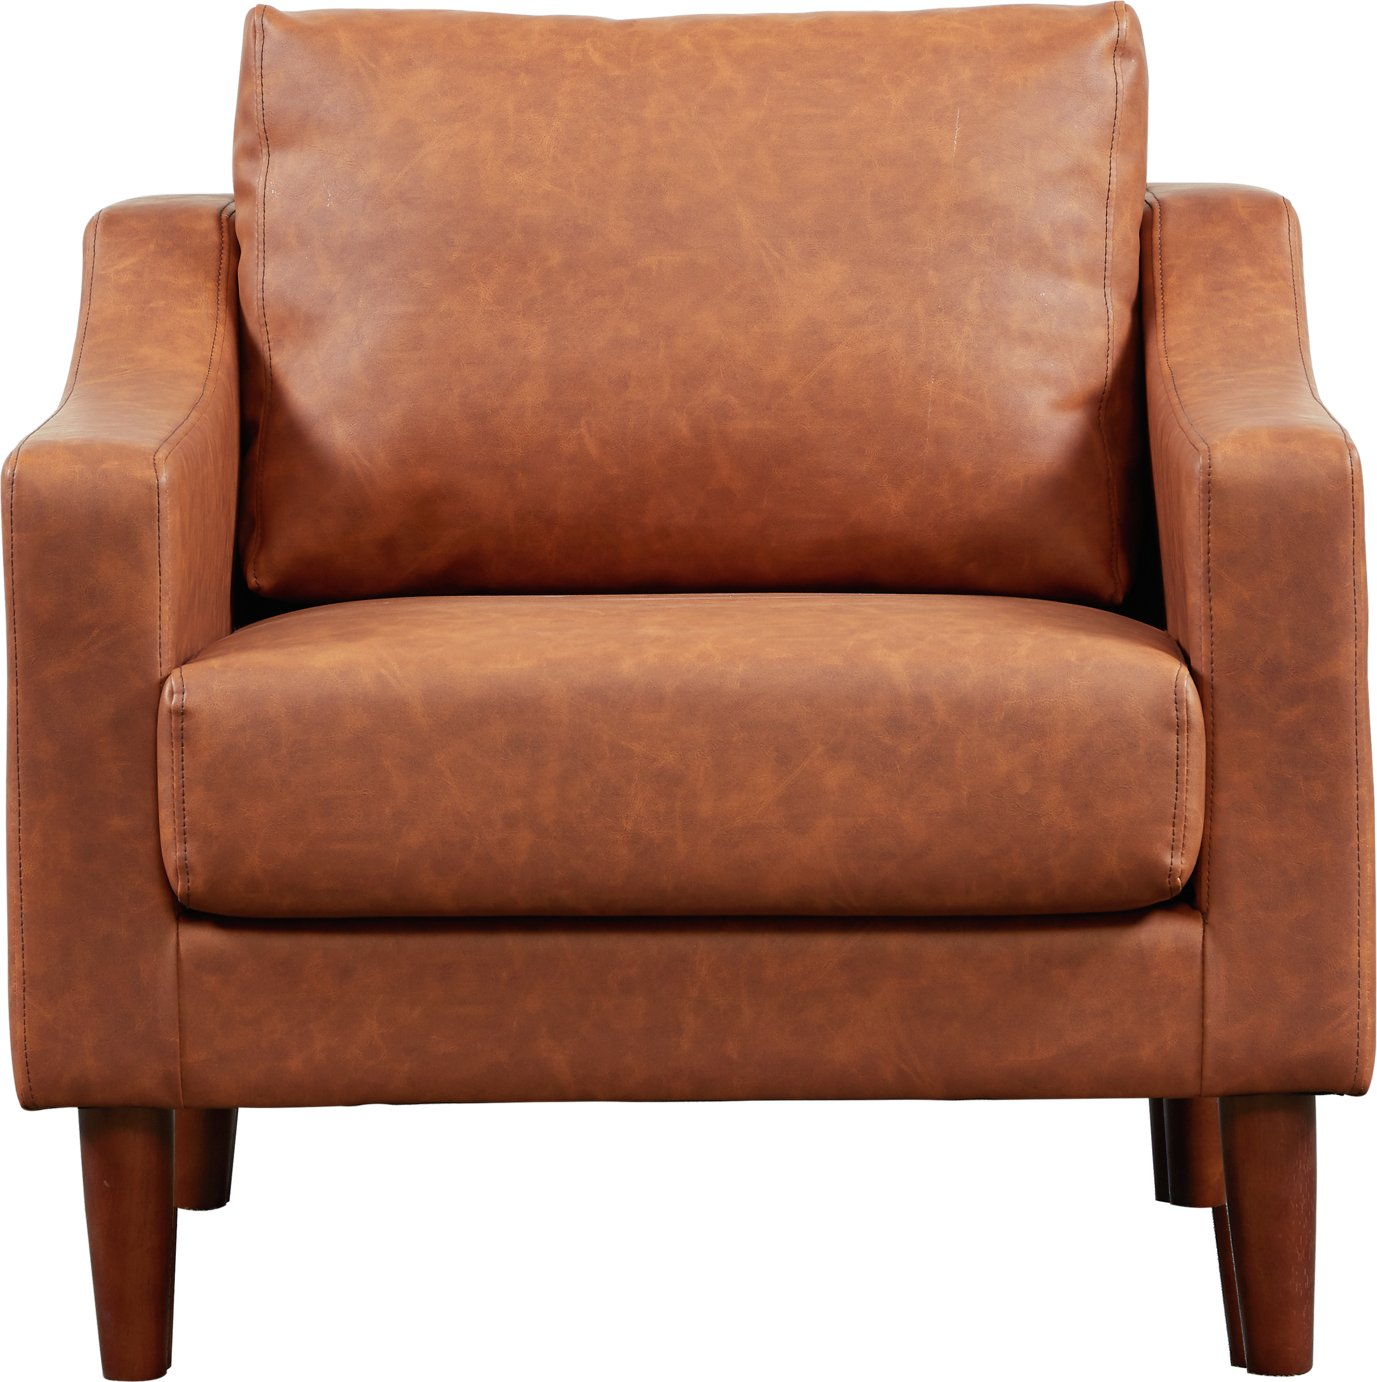 Argos Home Brixton Faux Leather Armchair - Tan